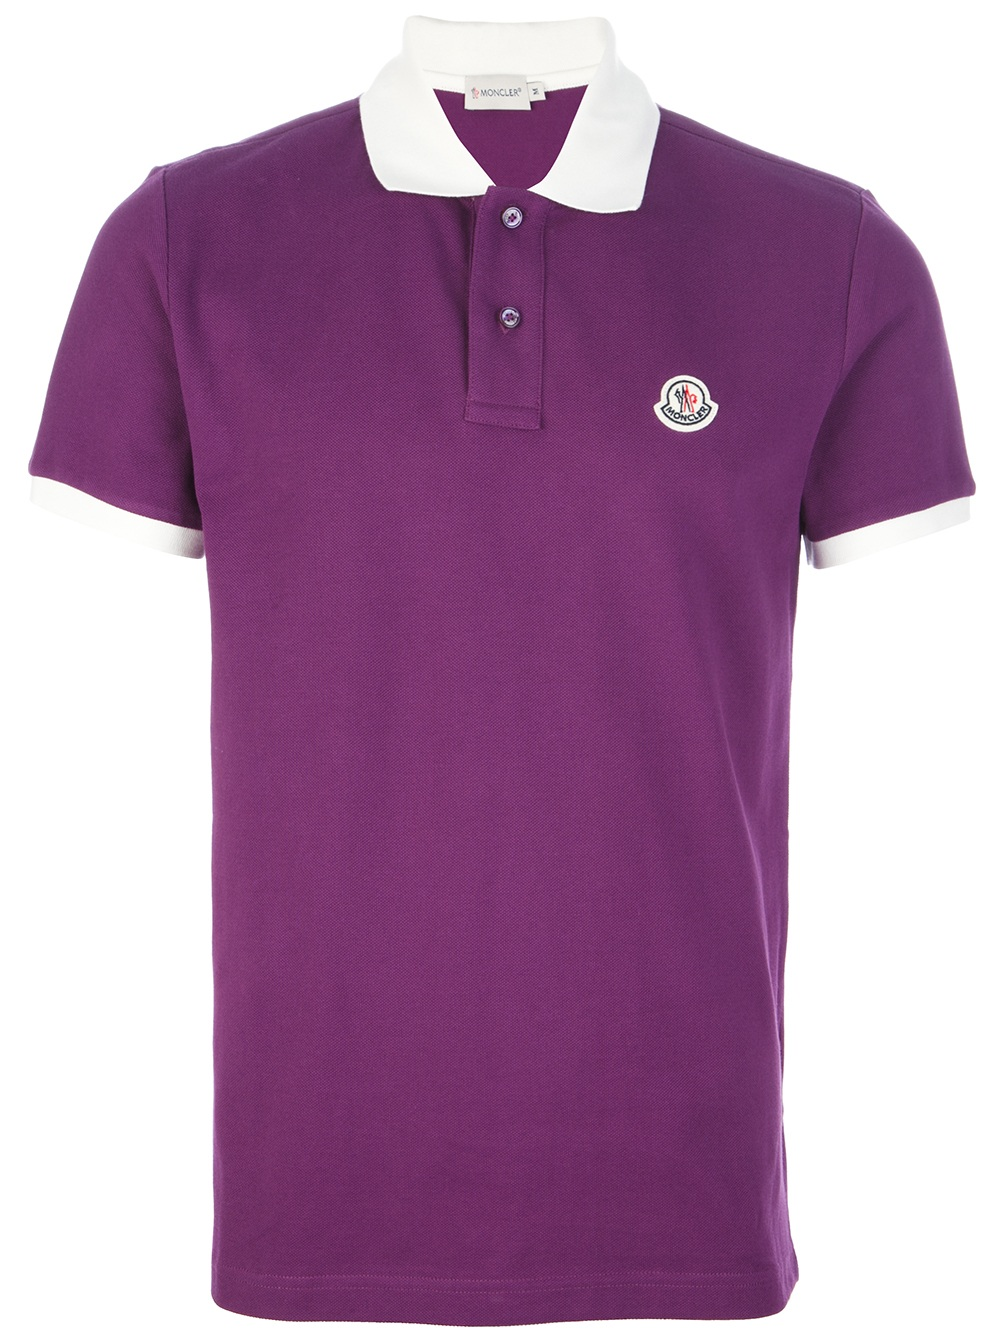 moncler purple shirt